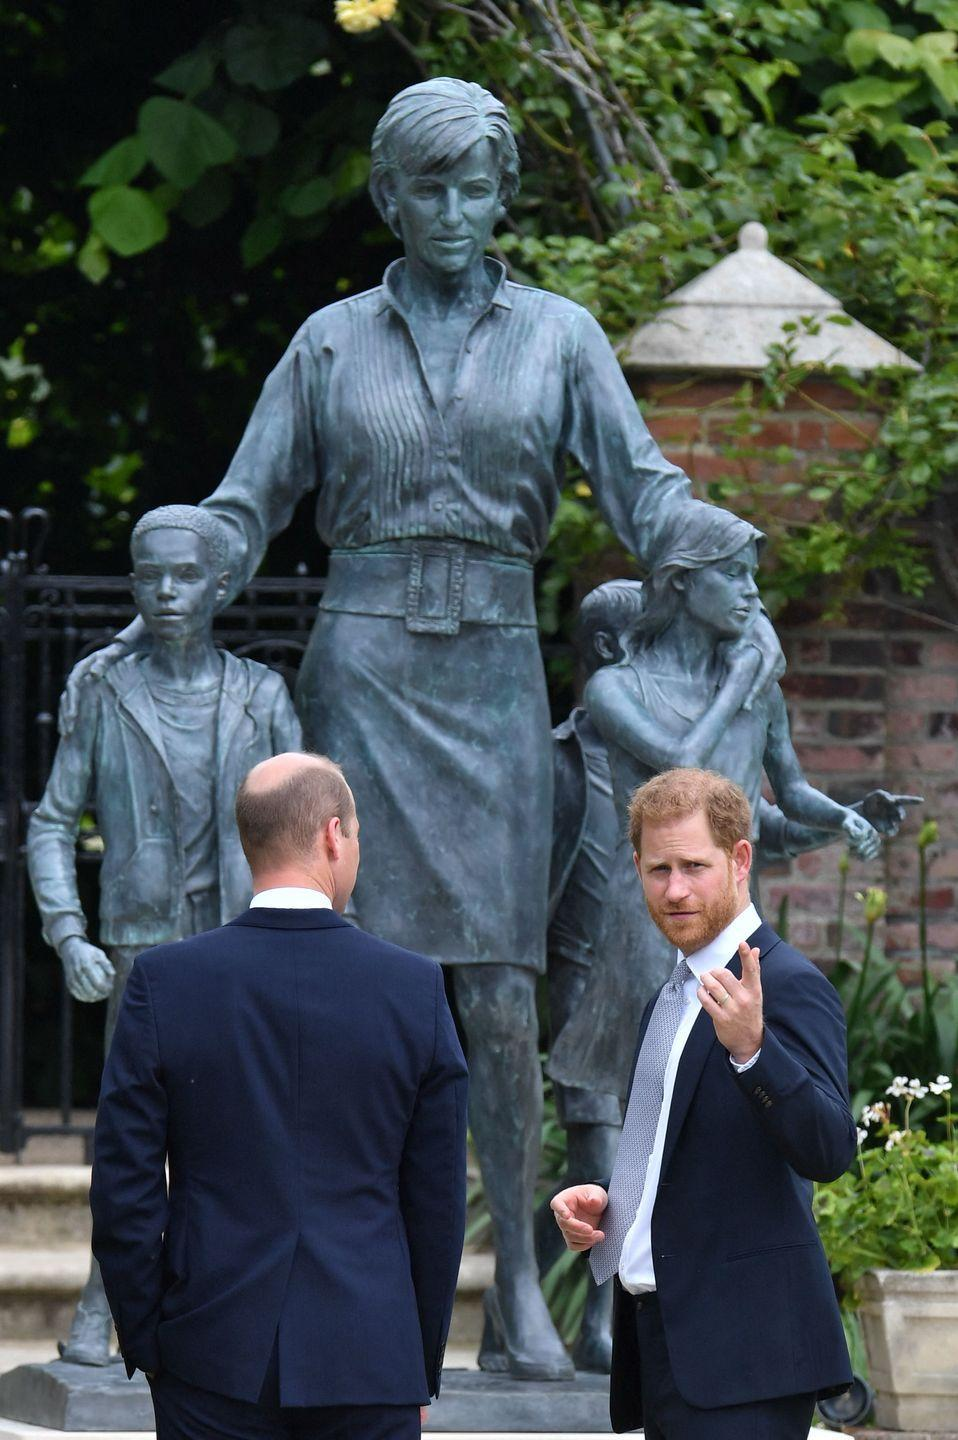 <p>The statue of Diana was designed and sculpted by Ian Rank-Broadley. </p>